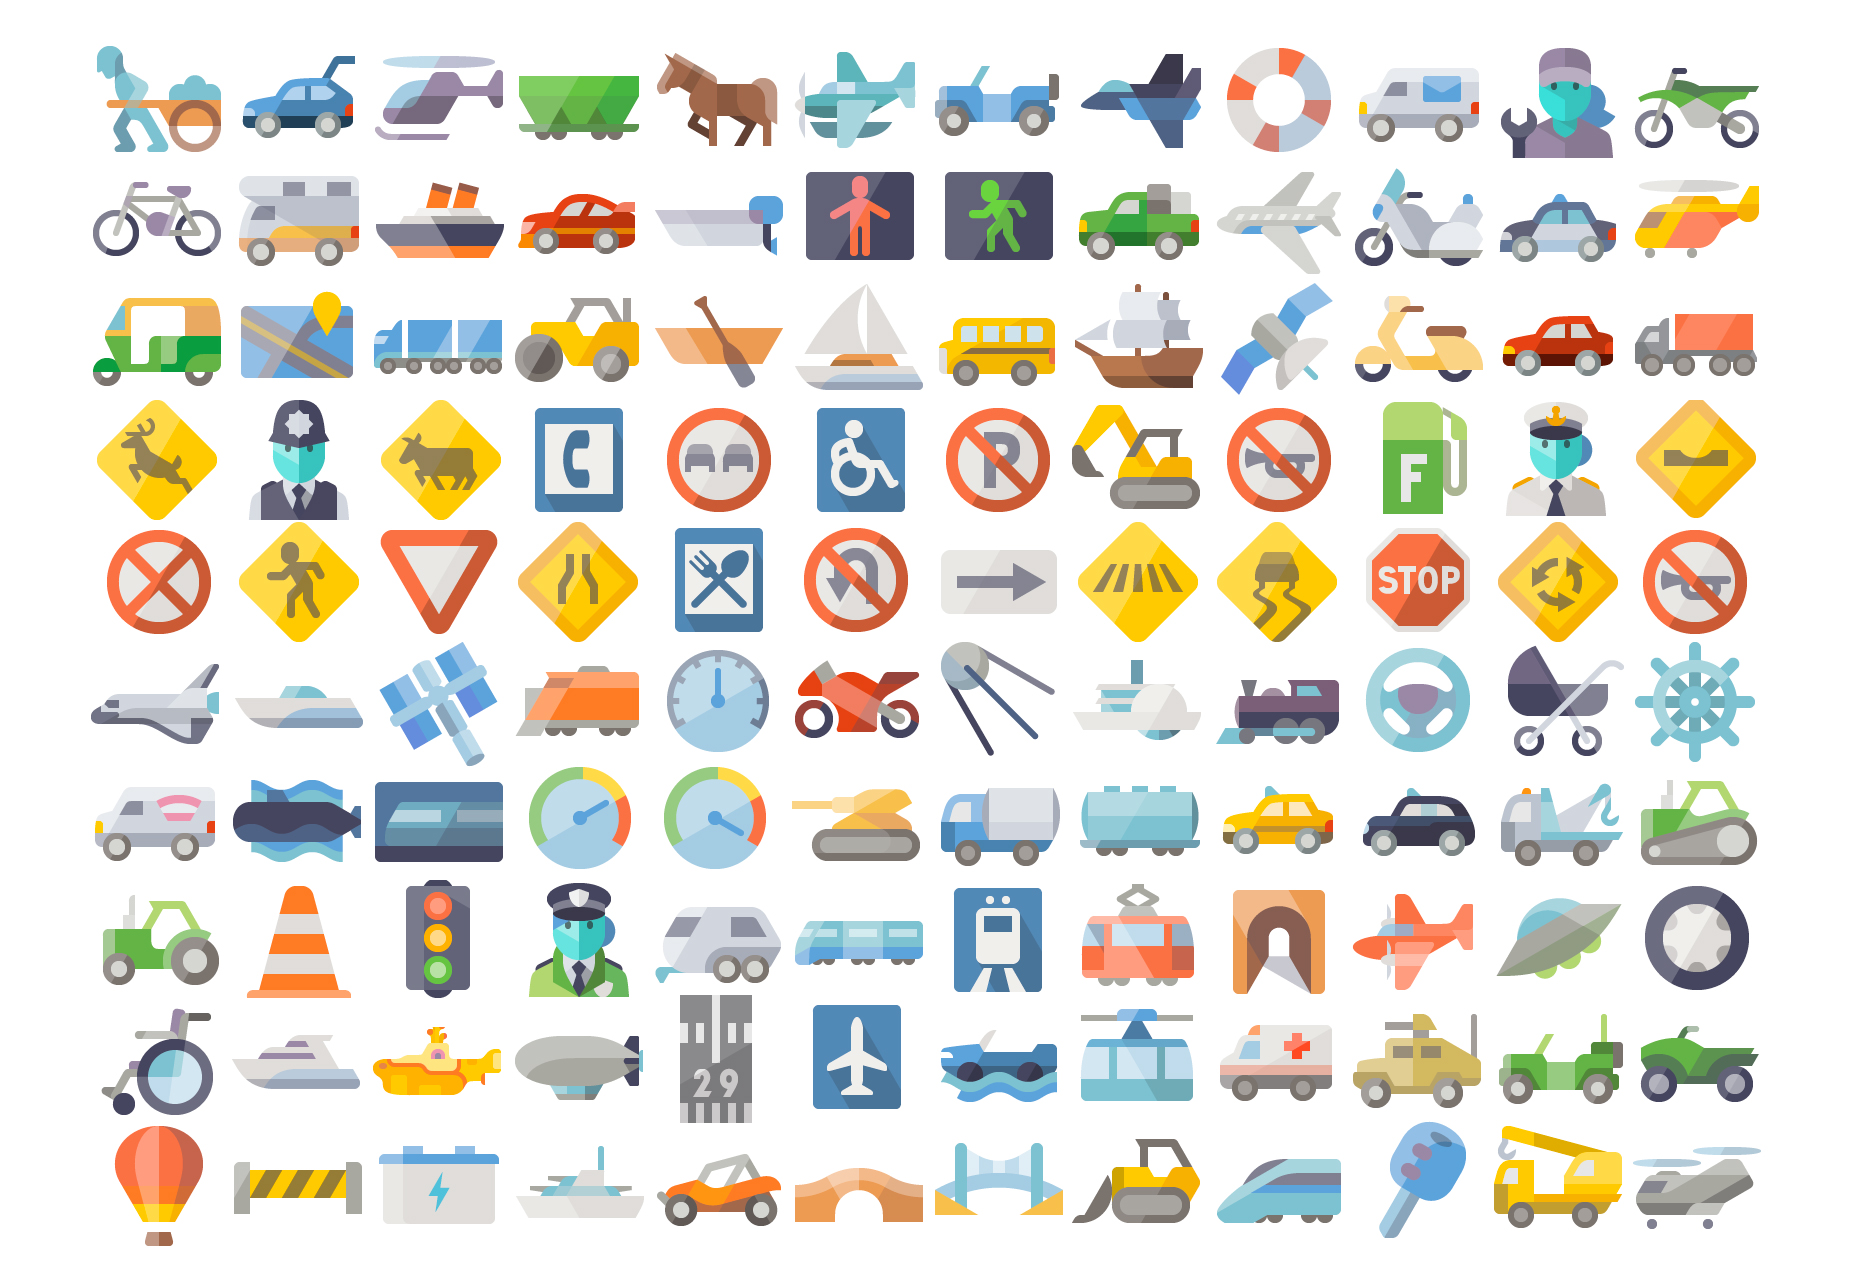 Neat Flat Transportation Vector Icons